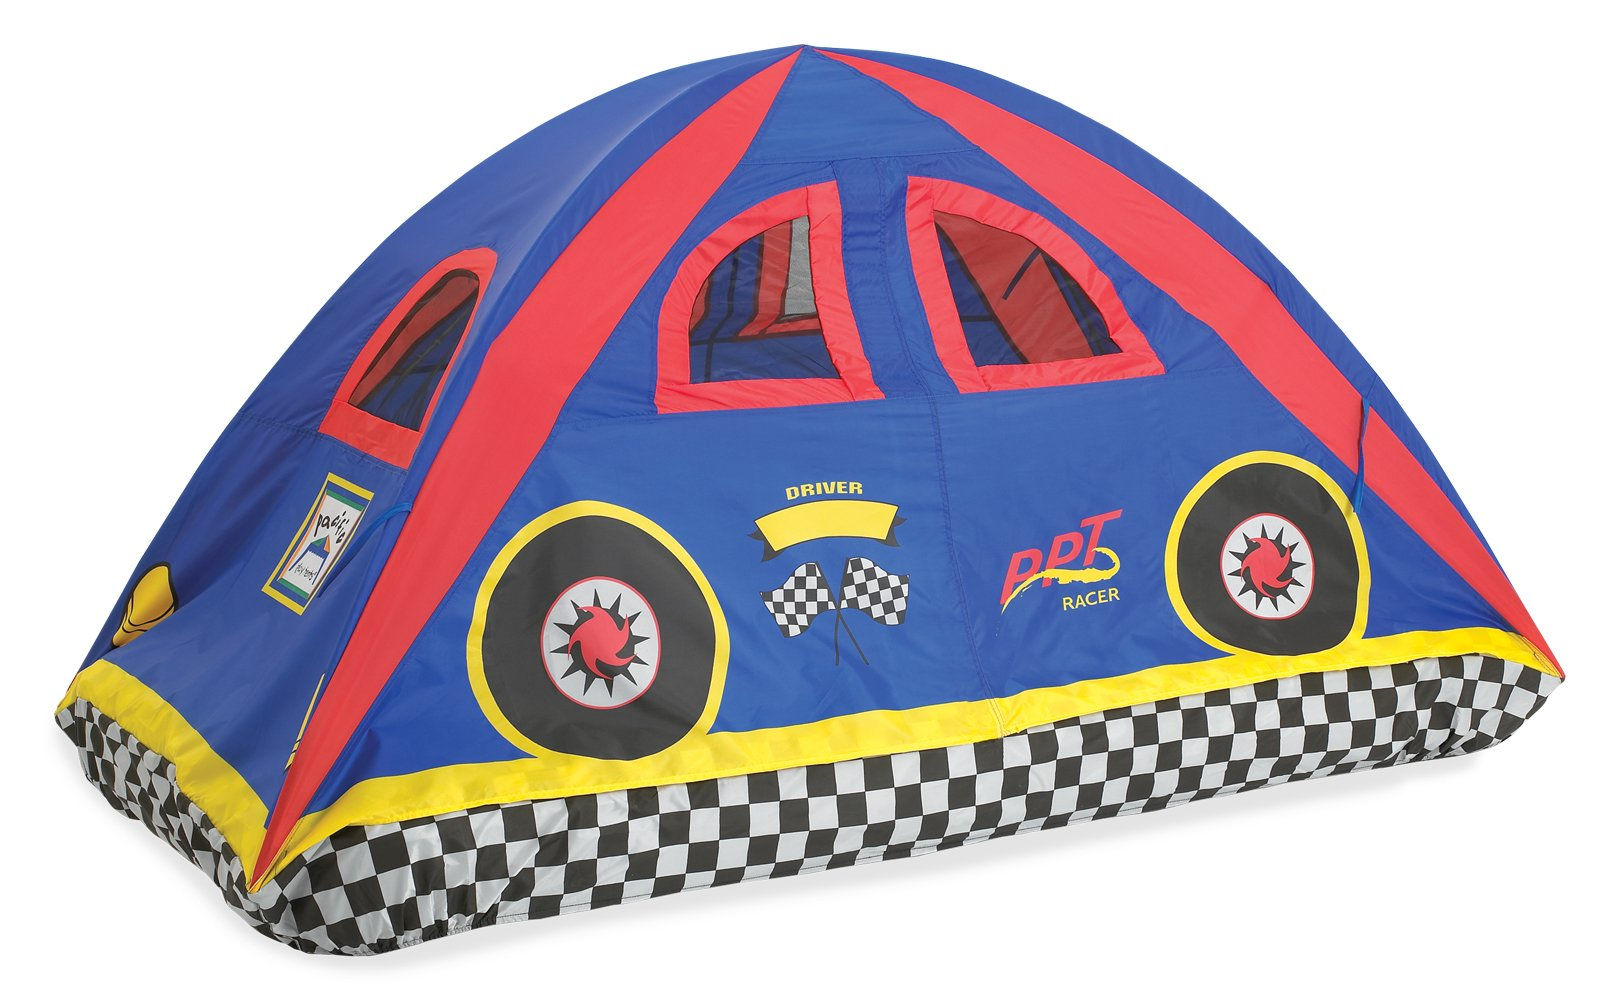 Pacific Play Tents 19710 Kids Rad Racer Bed Tent Playhouse - Twin Size by Pacific Play Tents (Image #1)